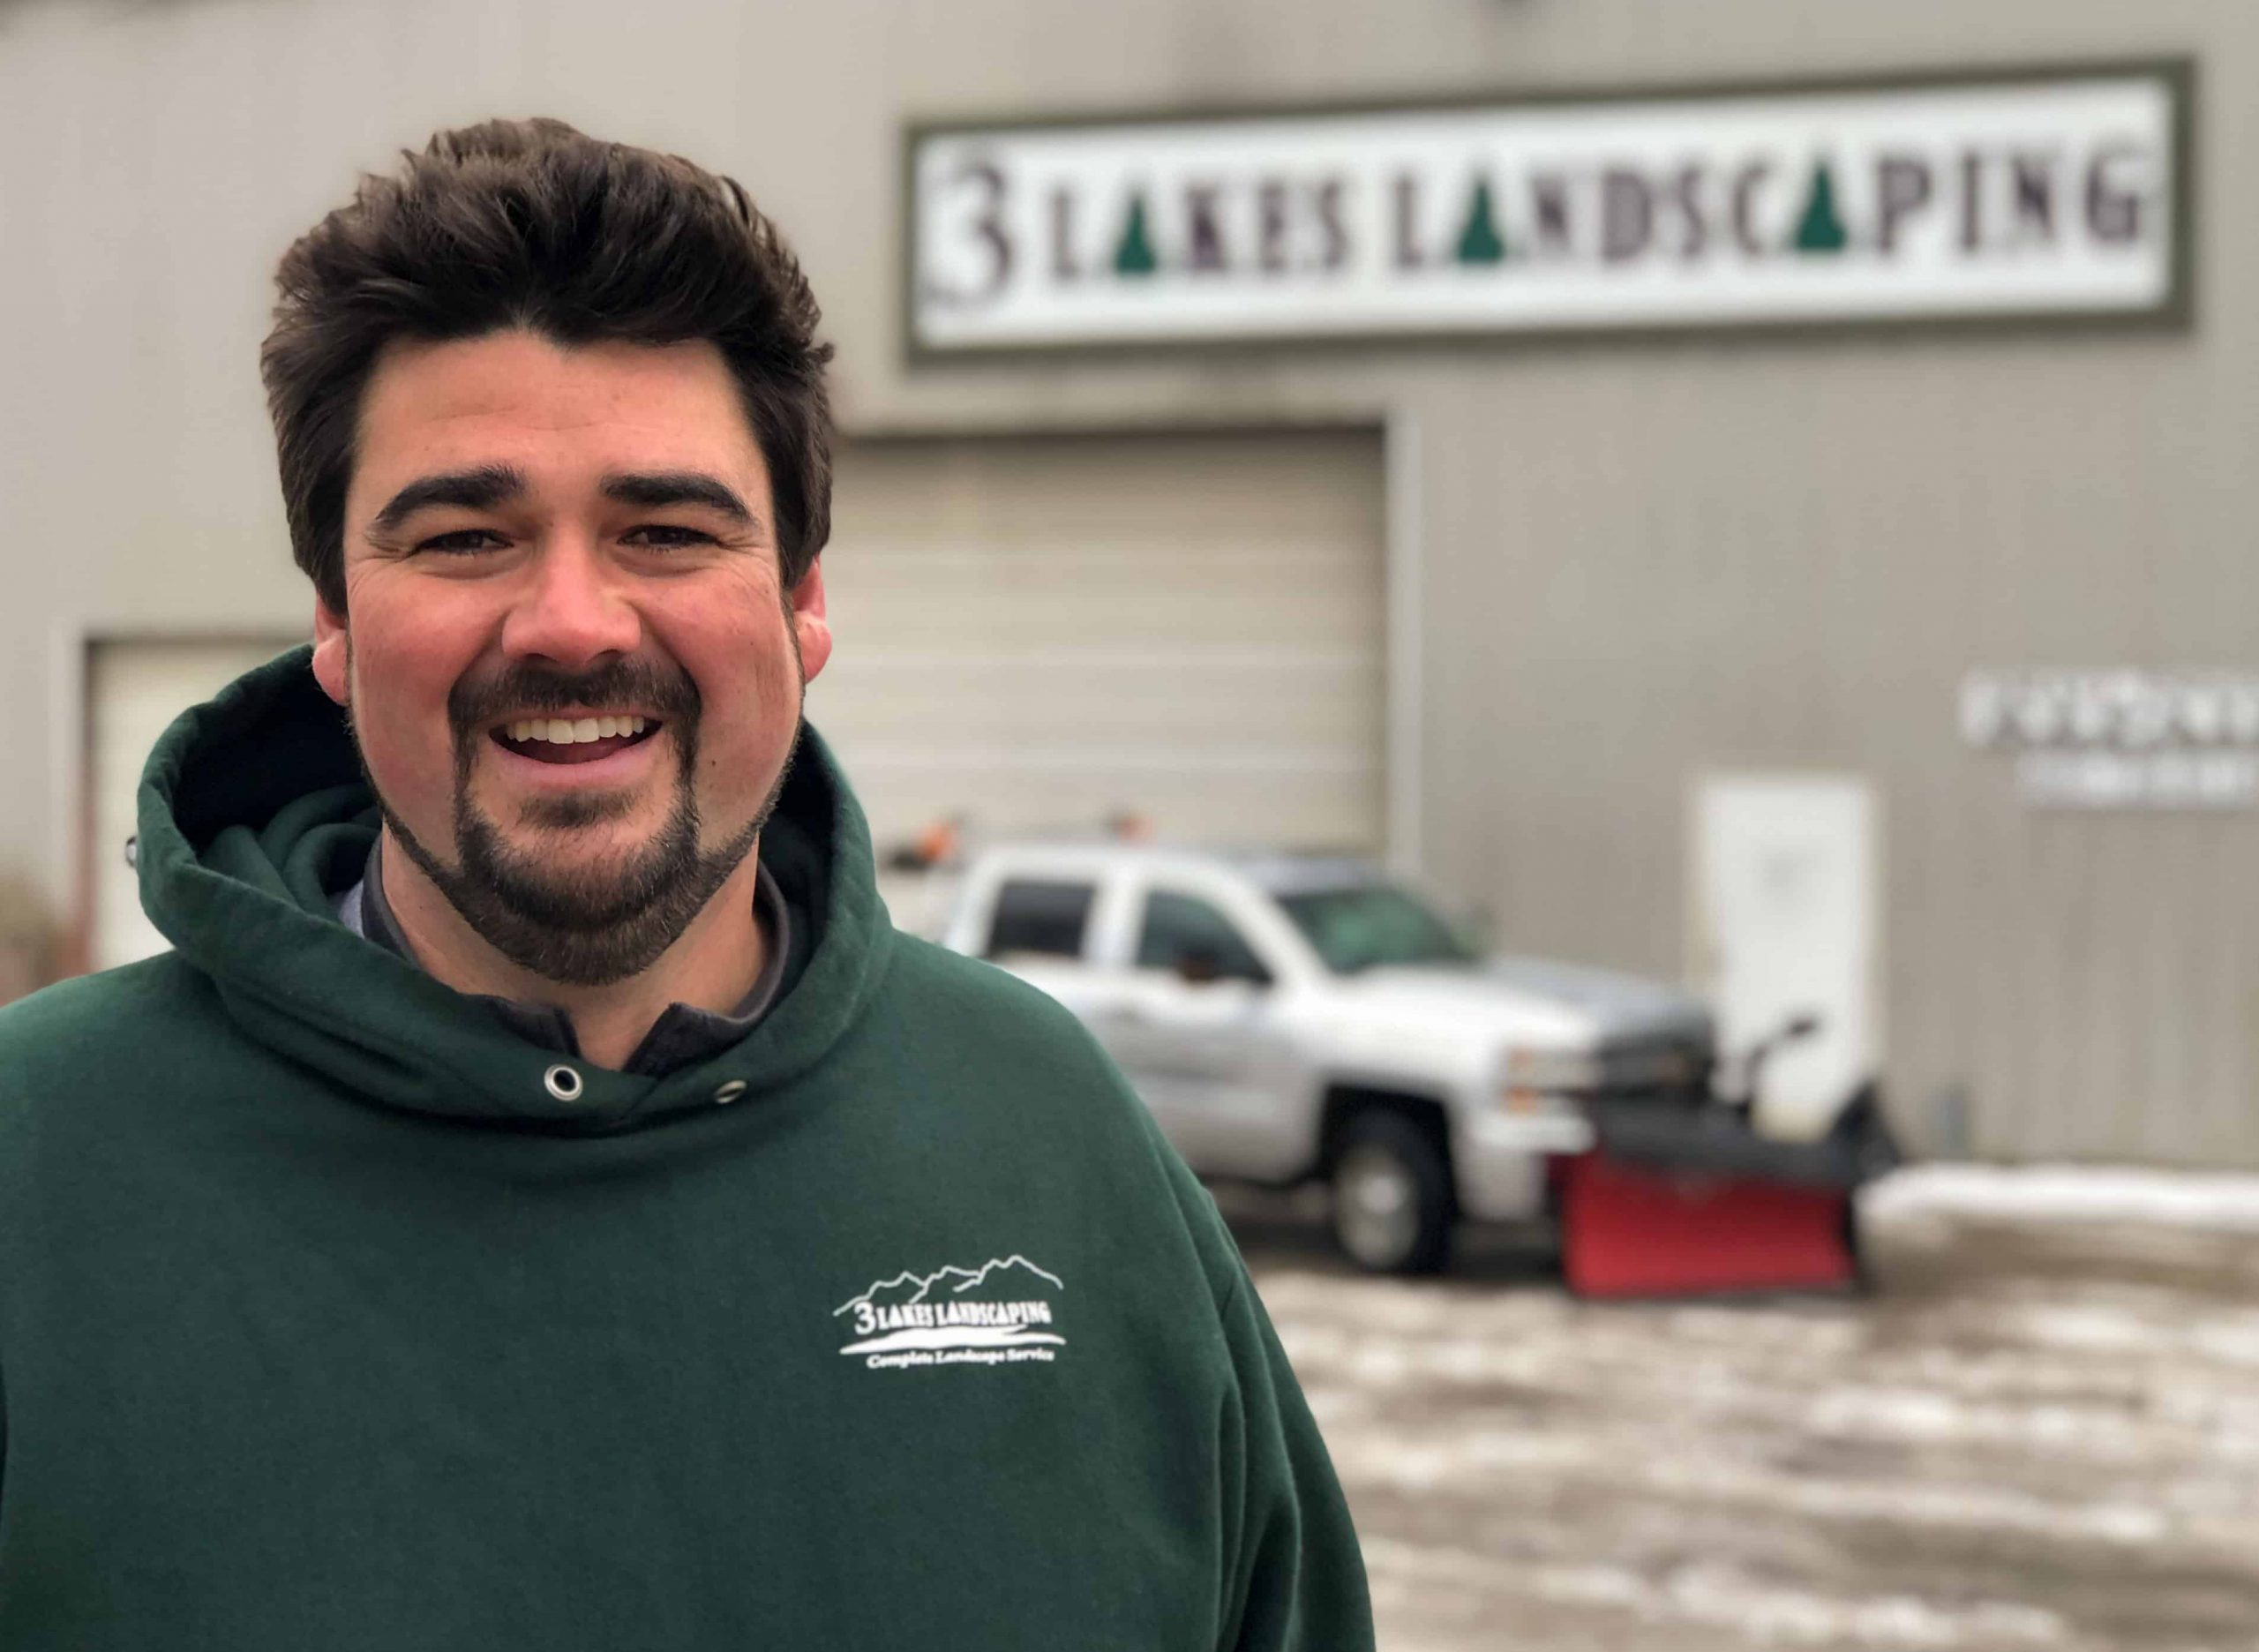 Colby Lenentine, 3 Lakes Landscaping Owner